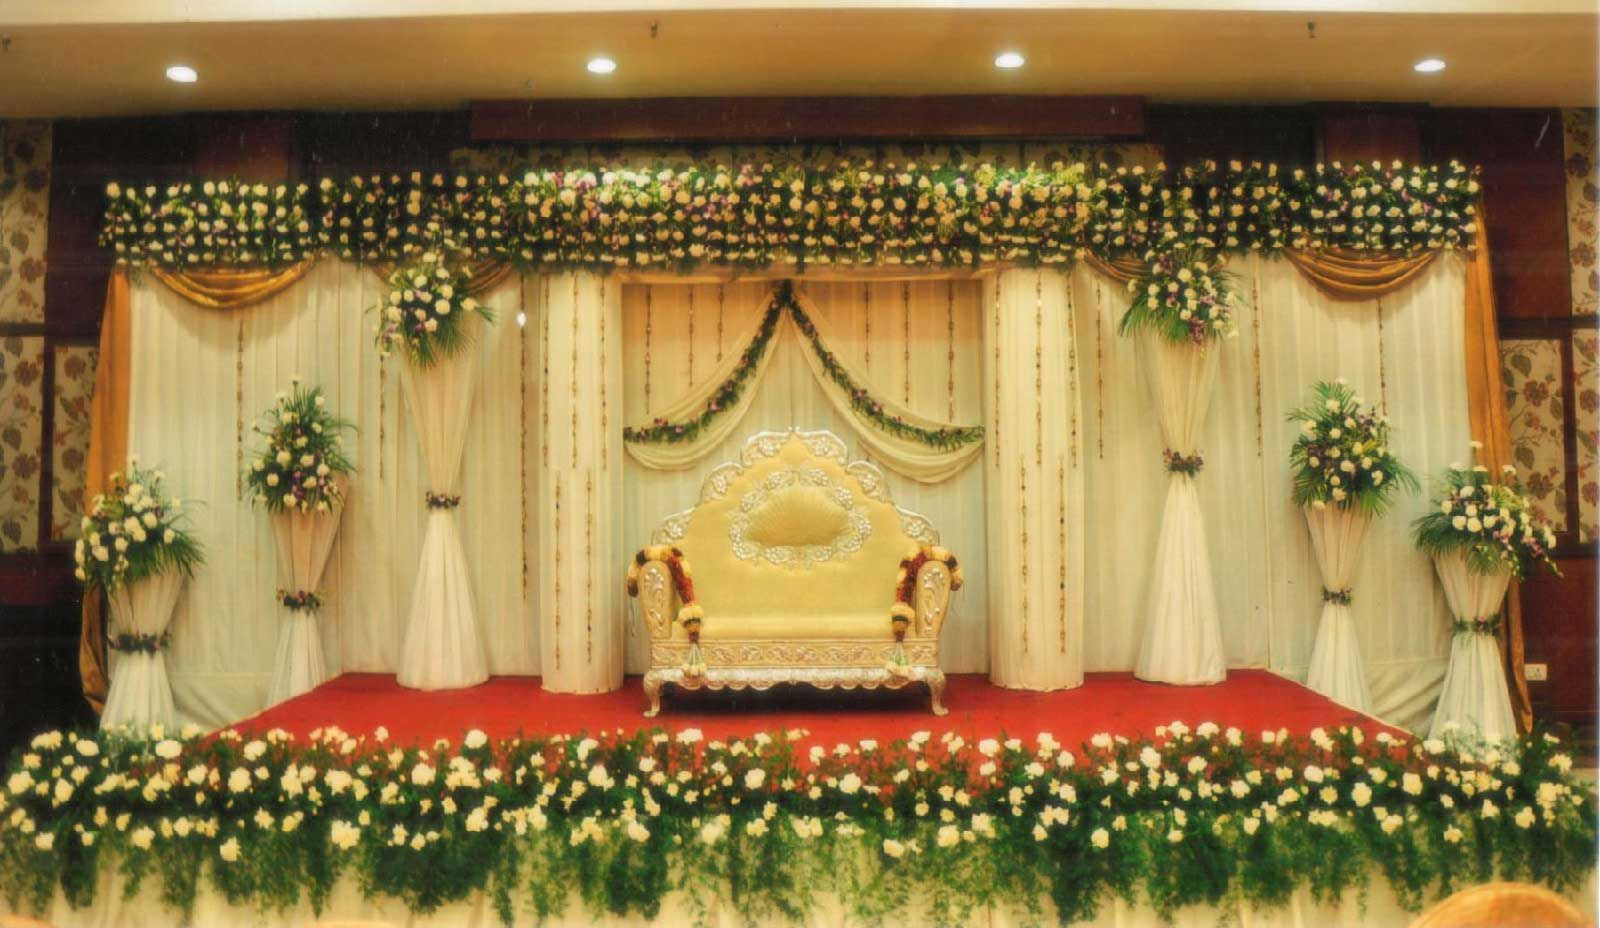 Wedding stage decoration in kerala decor pinterest wedding wedding stage decoration wedding decorations natural decorations in image list top decoration favorites home and outdoor furniture designsnatural junglespirit Gallery